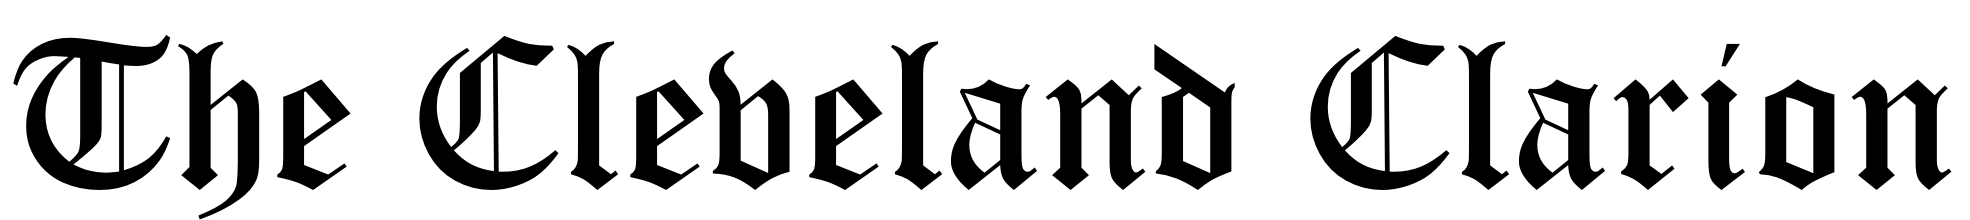 The student-run newspaper of Cleveland High School